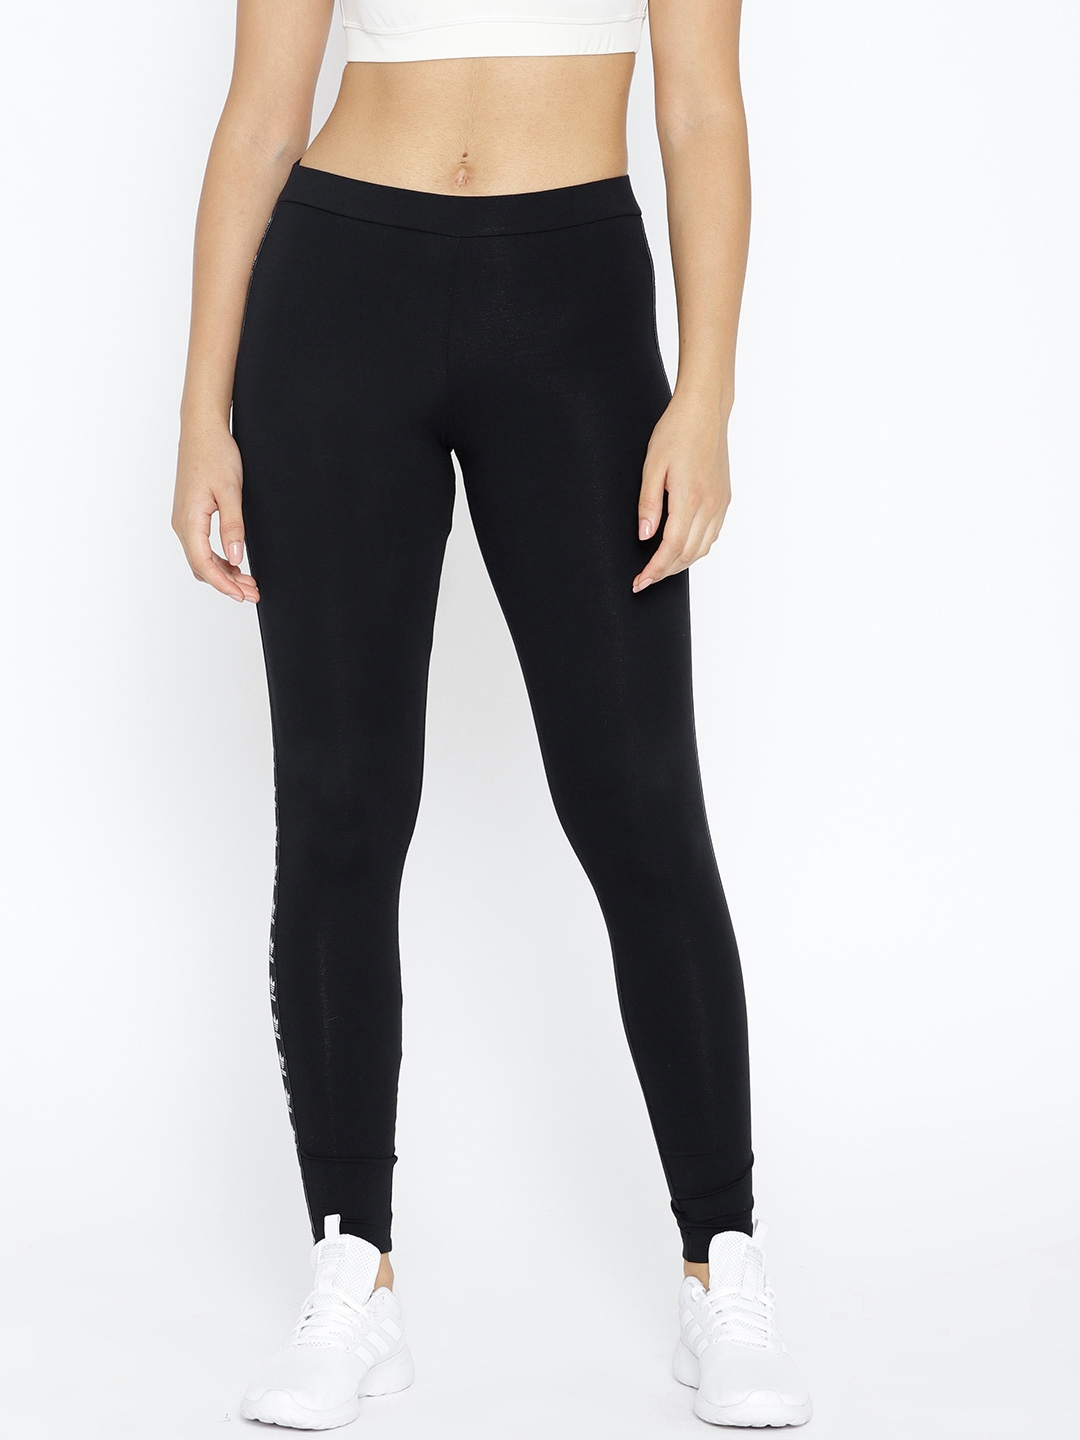 maorí edificio exilio  Buy ADIDAS Originals Women Black Slim Fit Trefoil Tights - Tights for Women  7101284 | Myntra